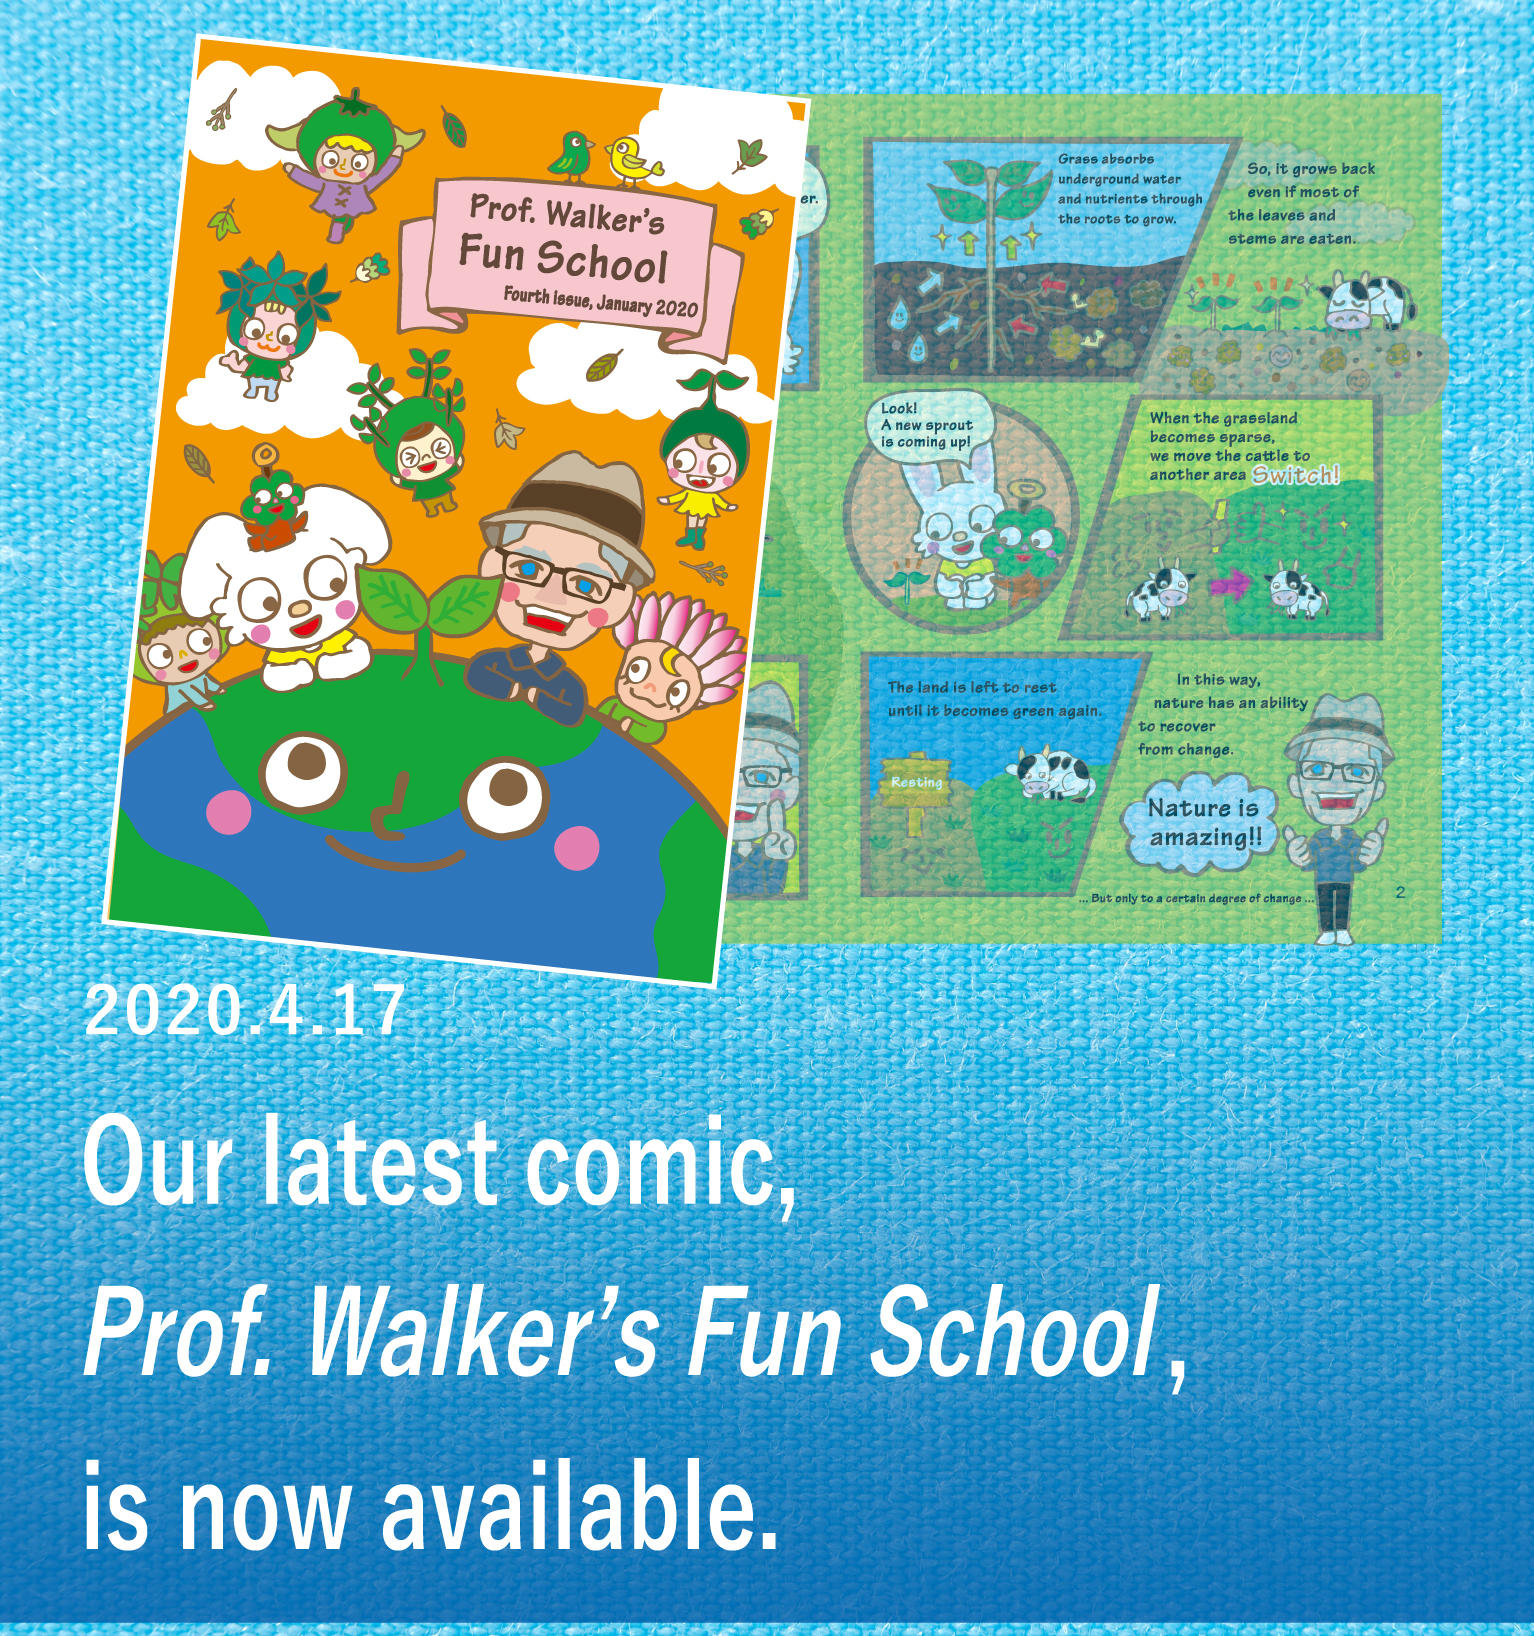 Prof. Walker's Fun School was published